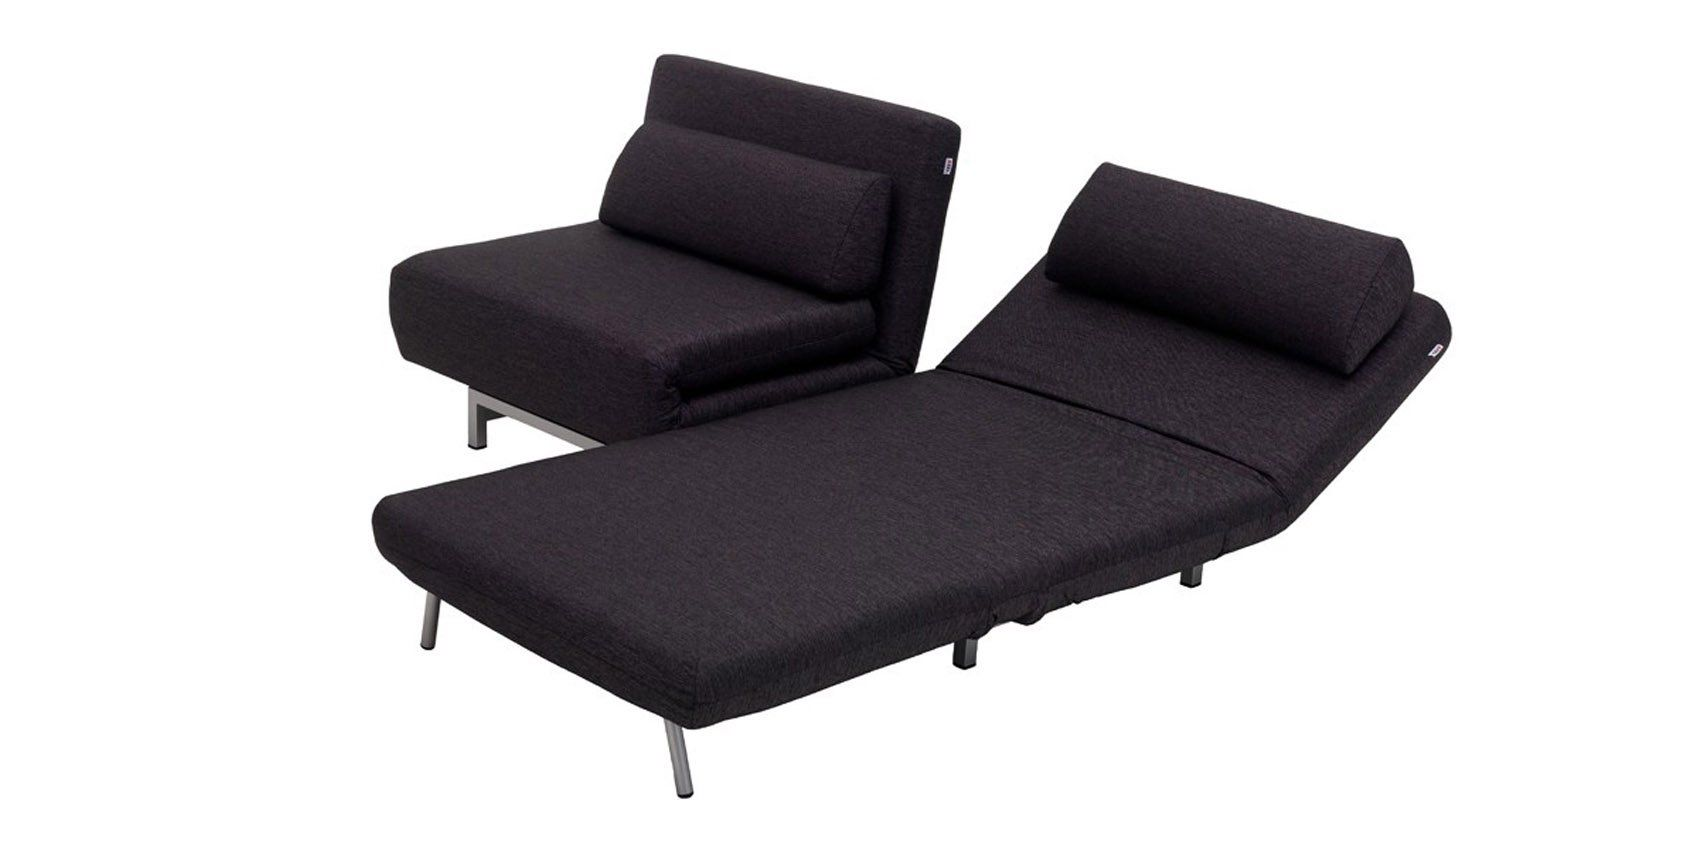 Modern Convertible Sofa Bed Chairs in Black Fabric 2 Seat Design by ...